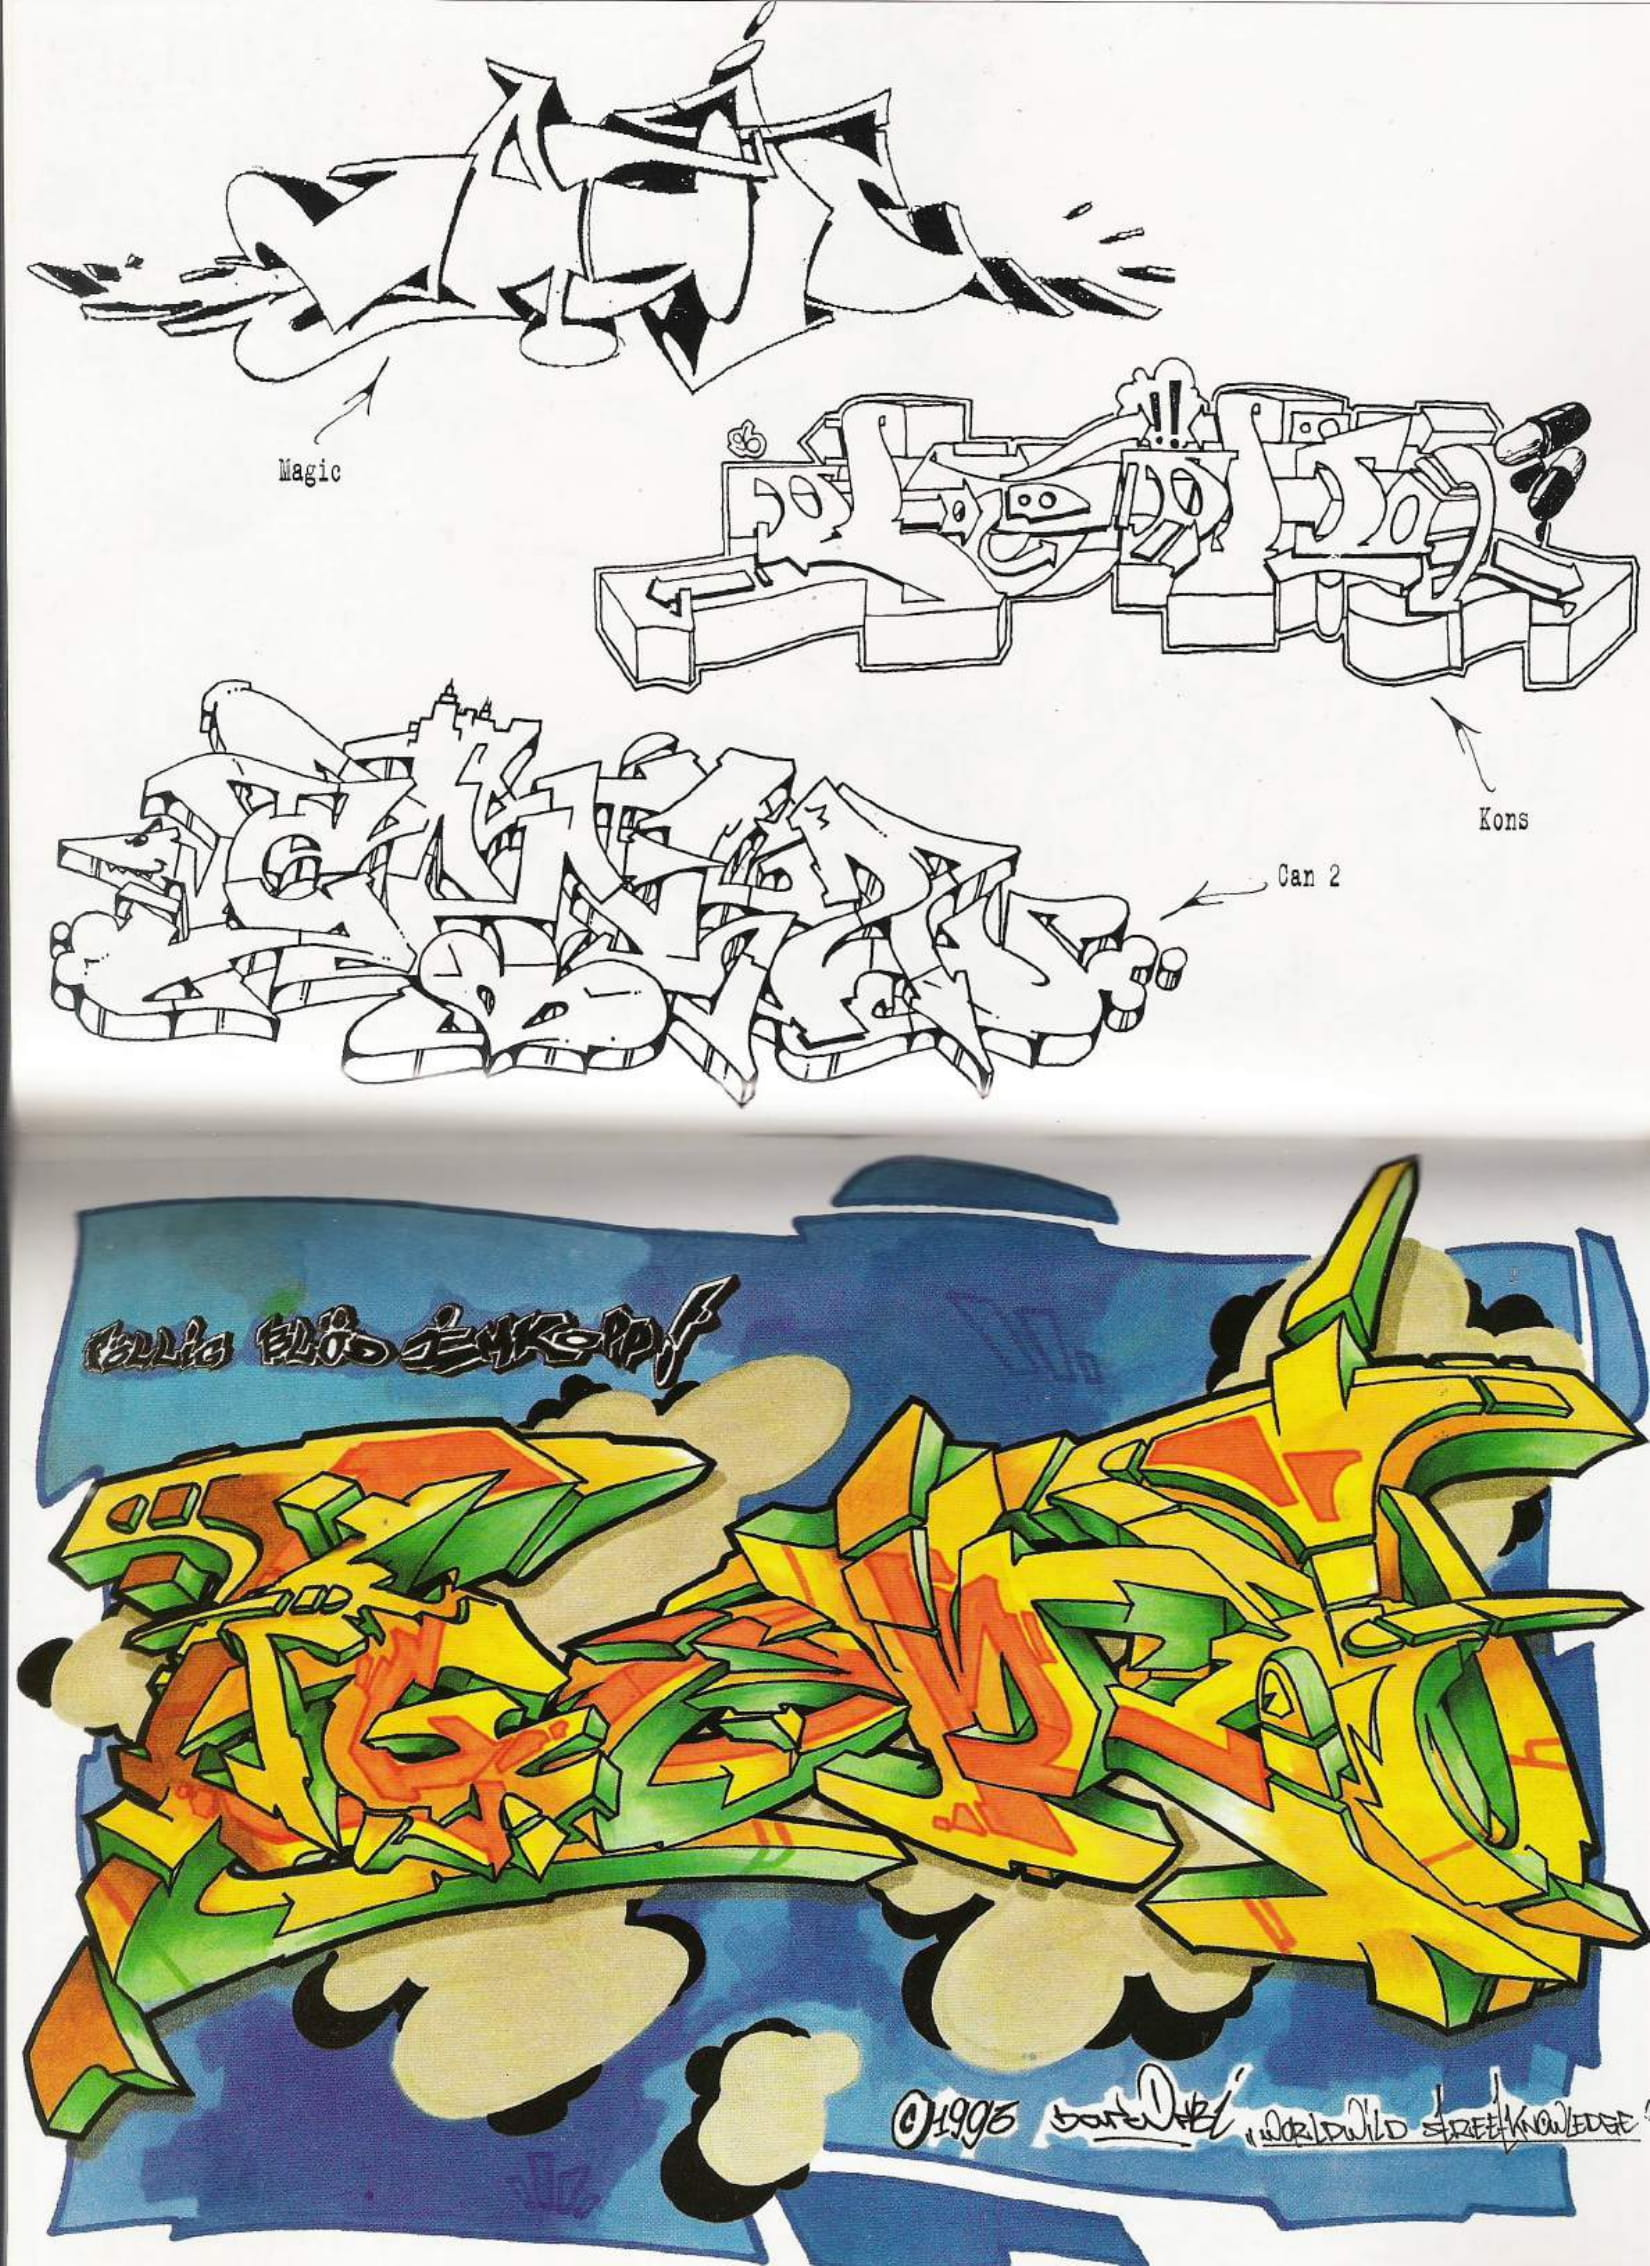 Backjumps.-.Sketchbook-AEROHOLICS-compressed-46.jpg